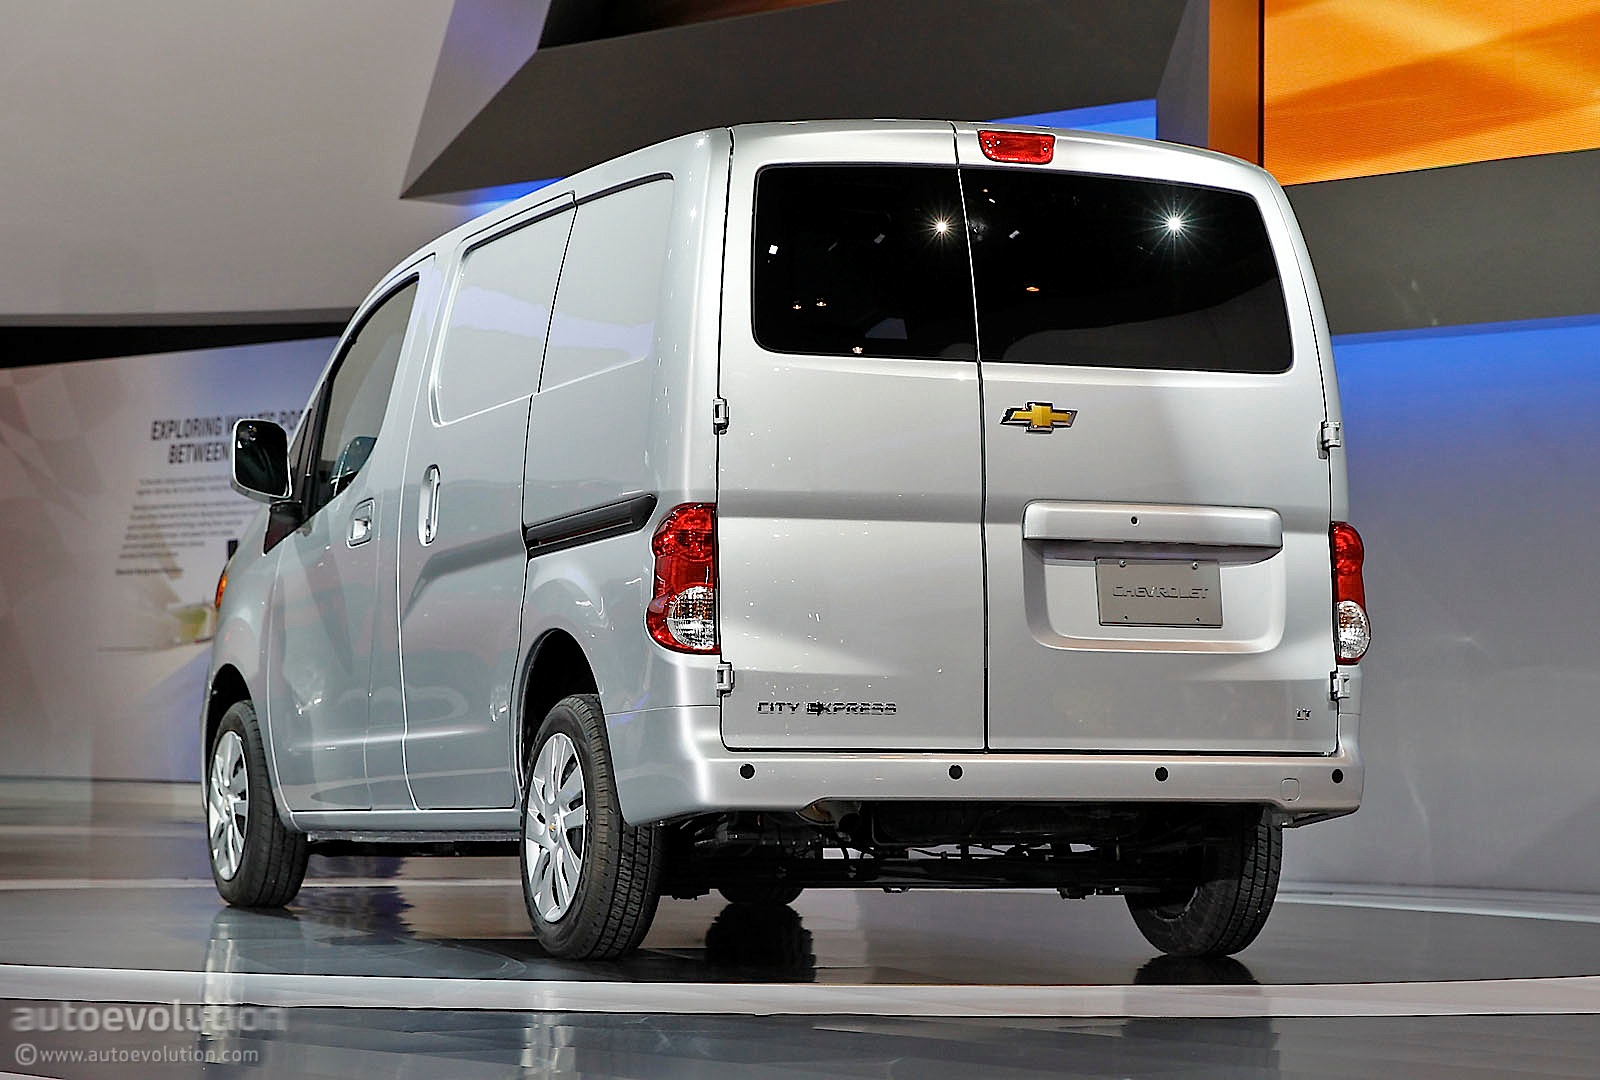 2015 Chevy City Express Wiring Diagram Search For Diagrams 2002 Van Chevrolet Cargo Photos Informations Articles Rh Bestcarmag Com 1996 Power